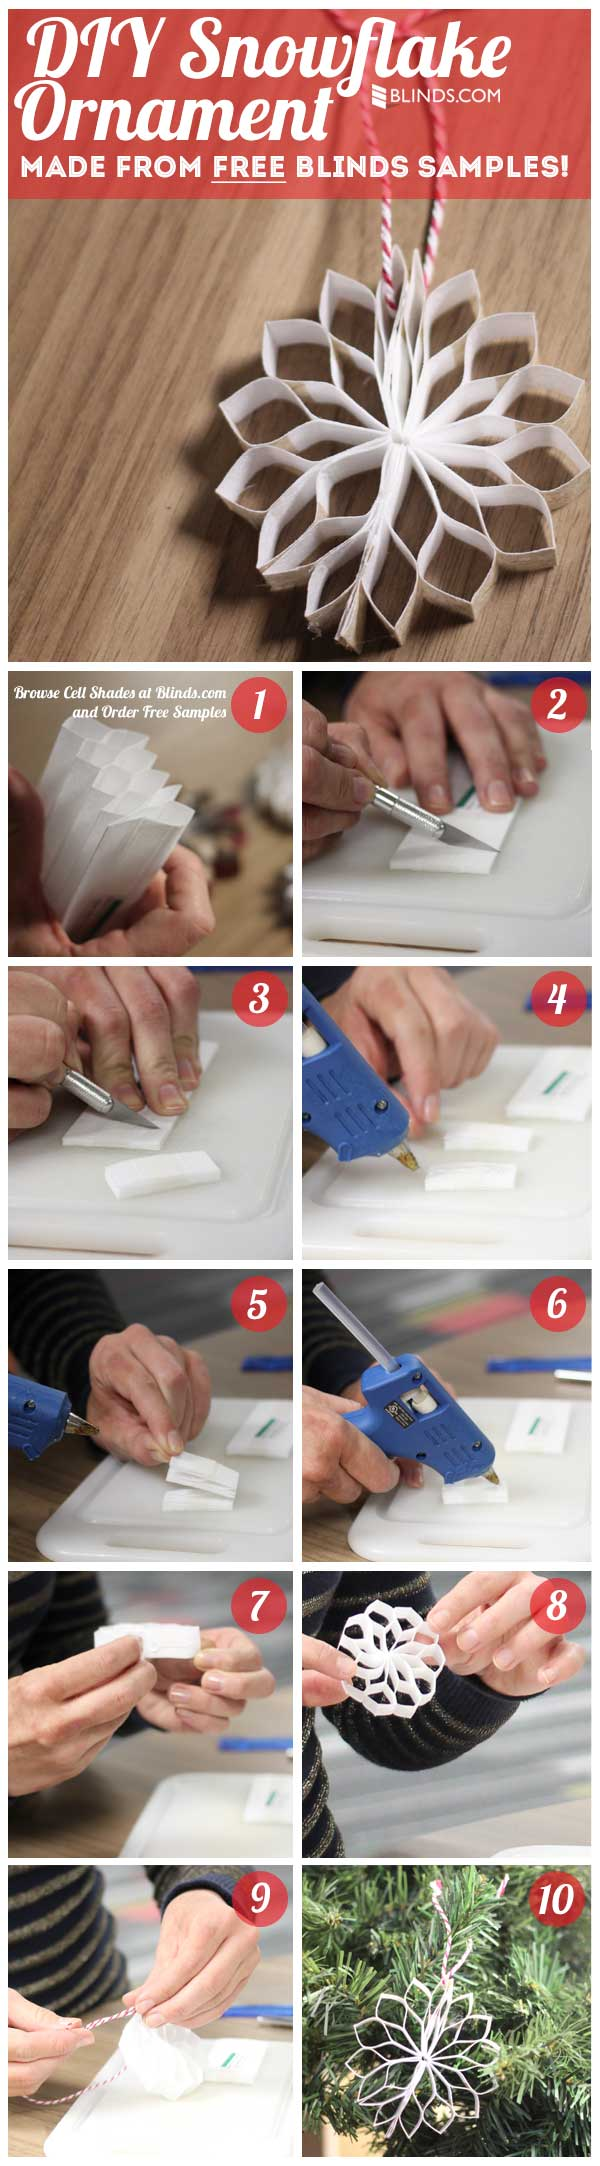 DIY Snowflake Ornament from Blinds Samples